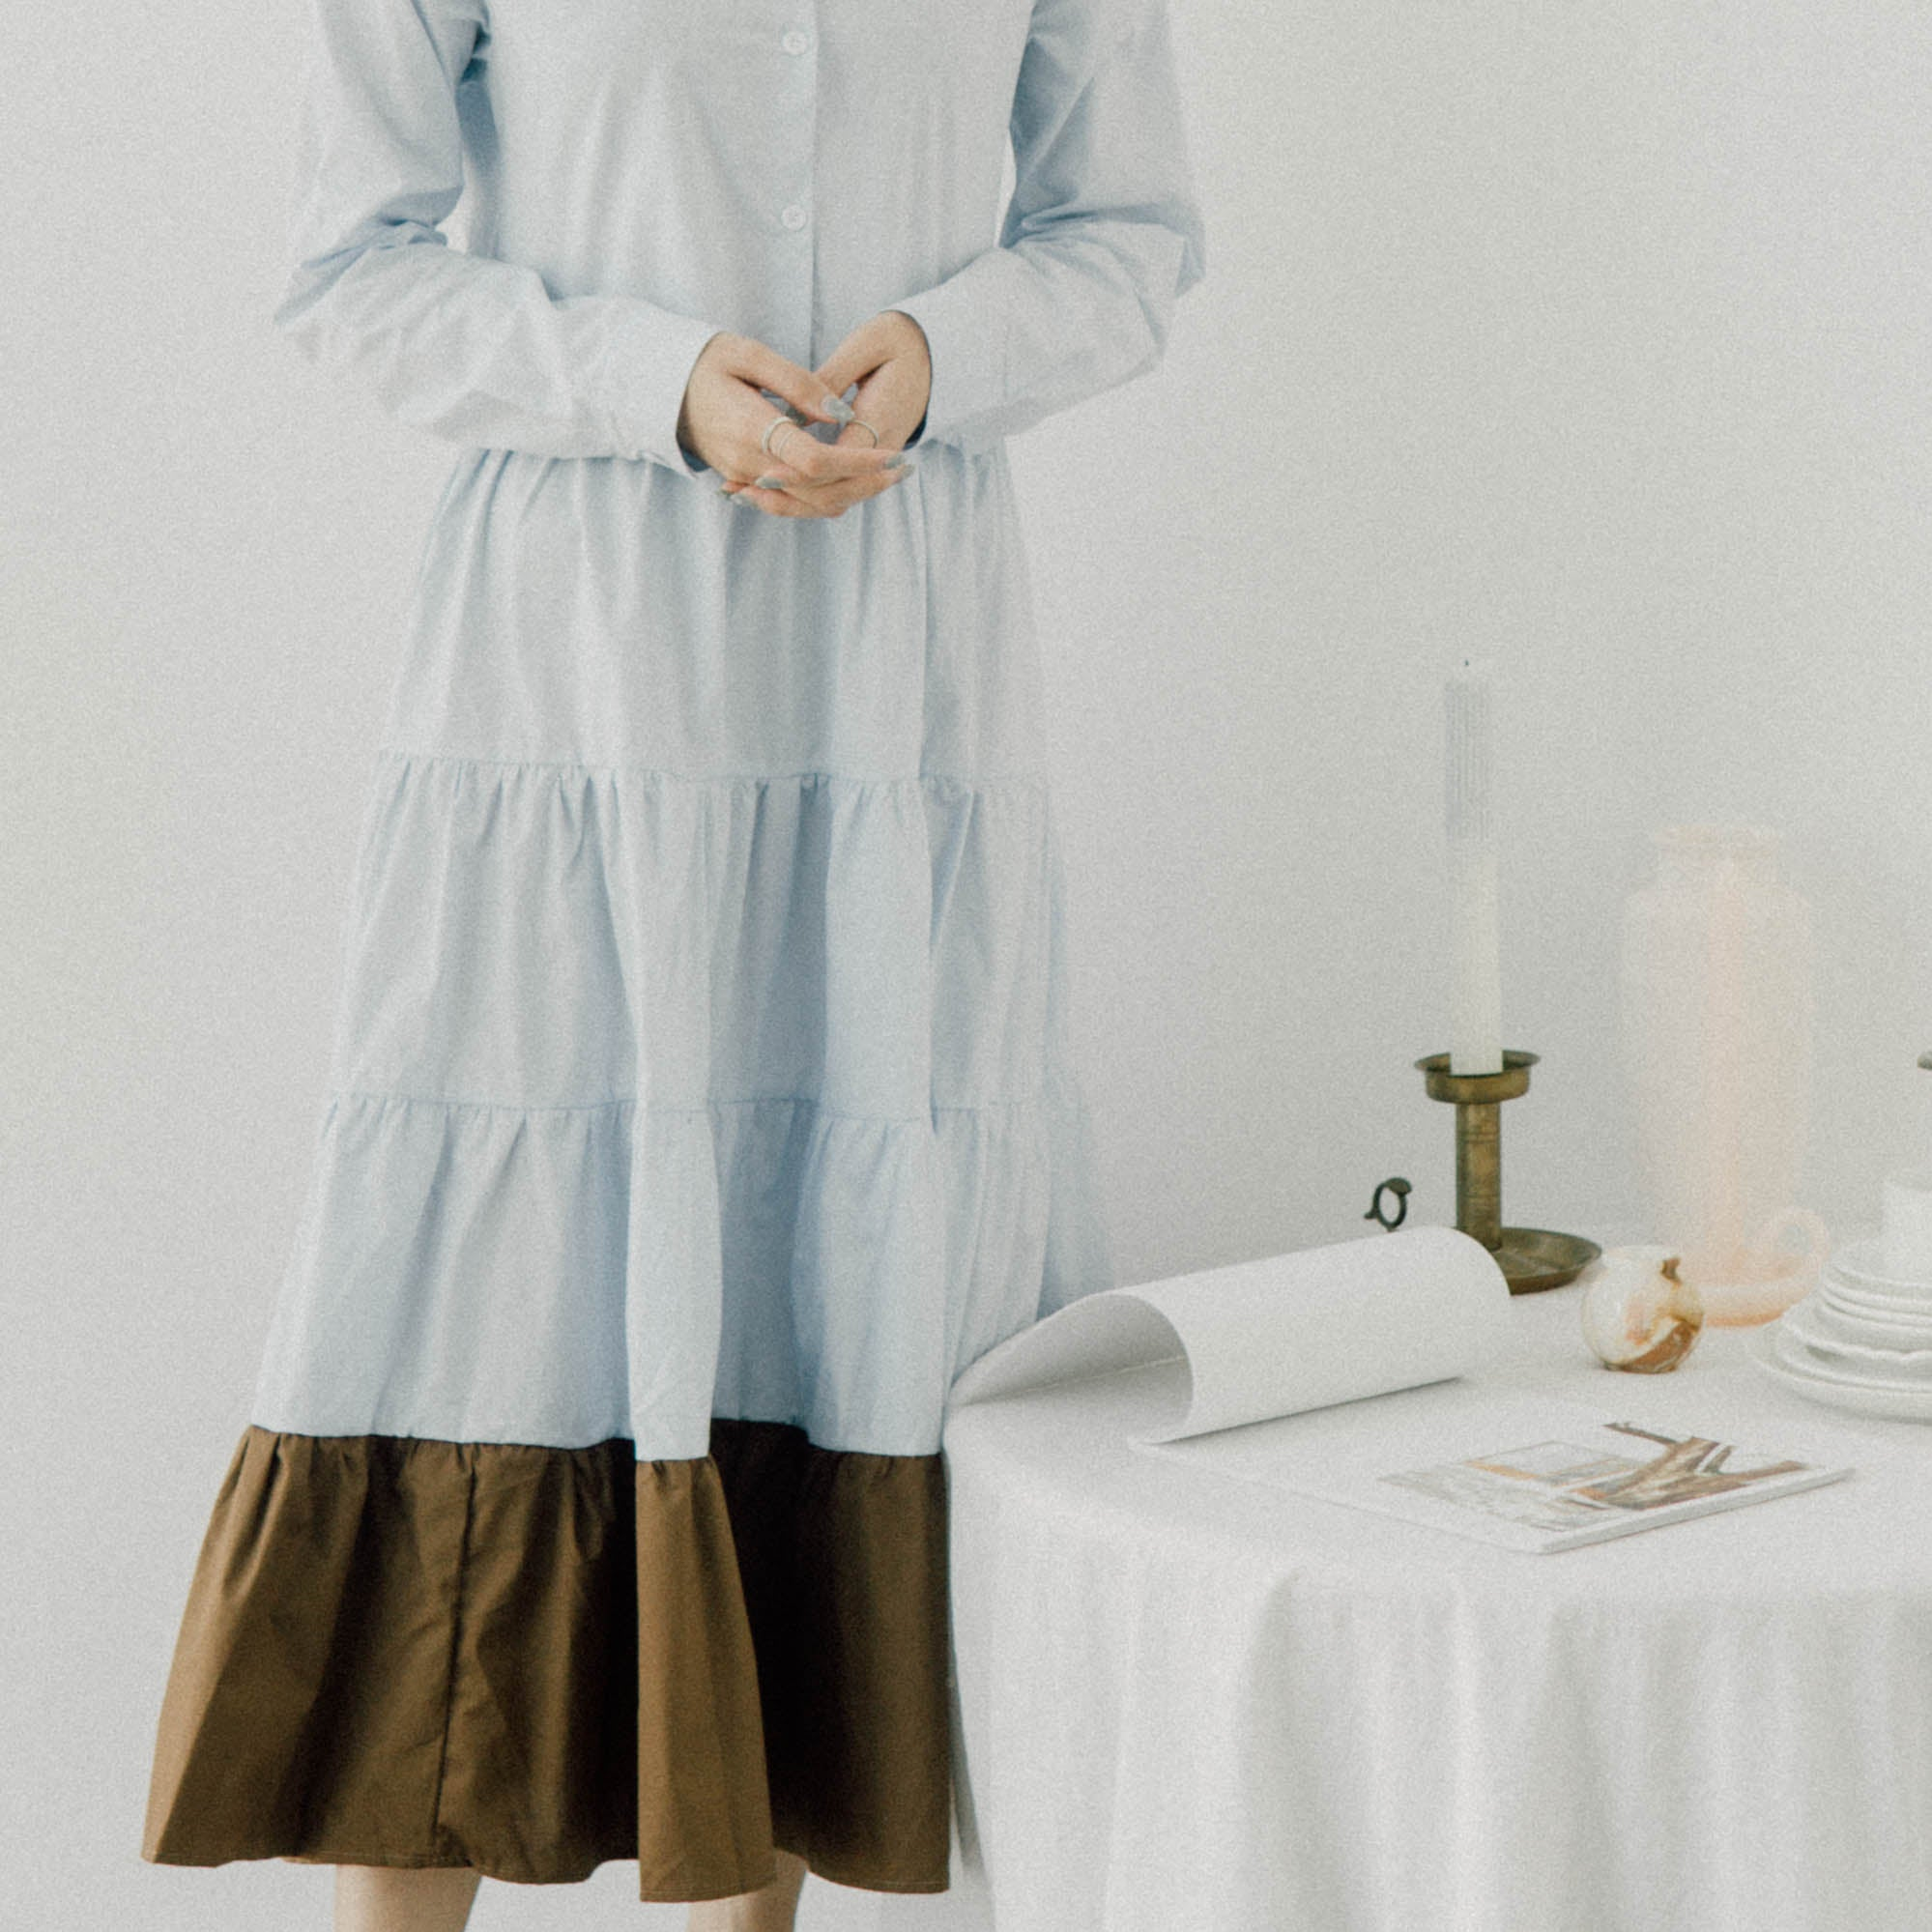 Loose pleated design with lapel collar and contrast color puff sleeve dress in baby blue